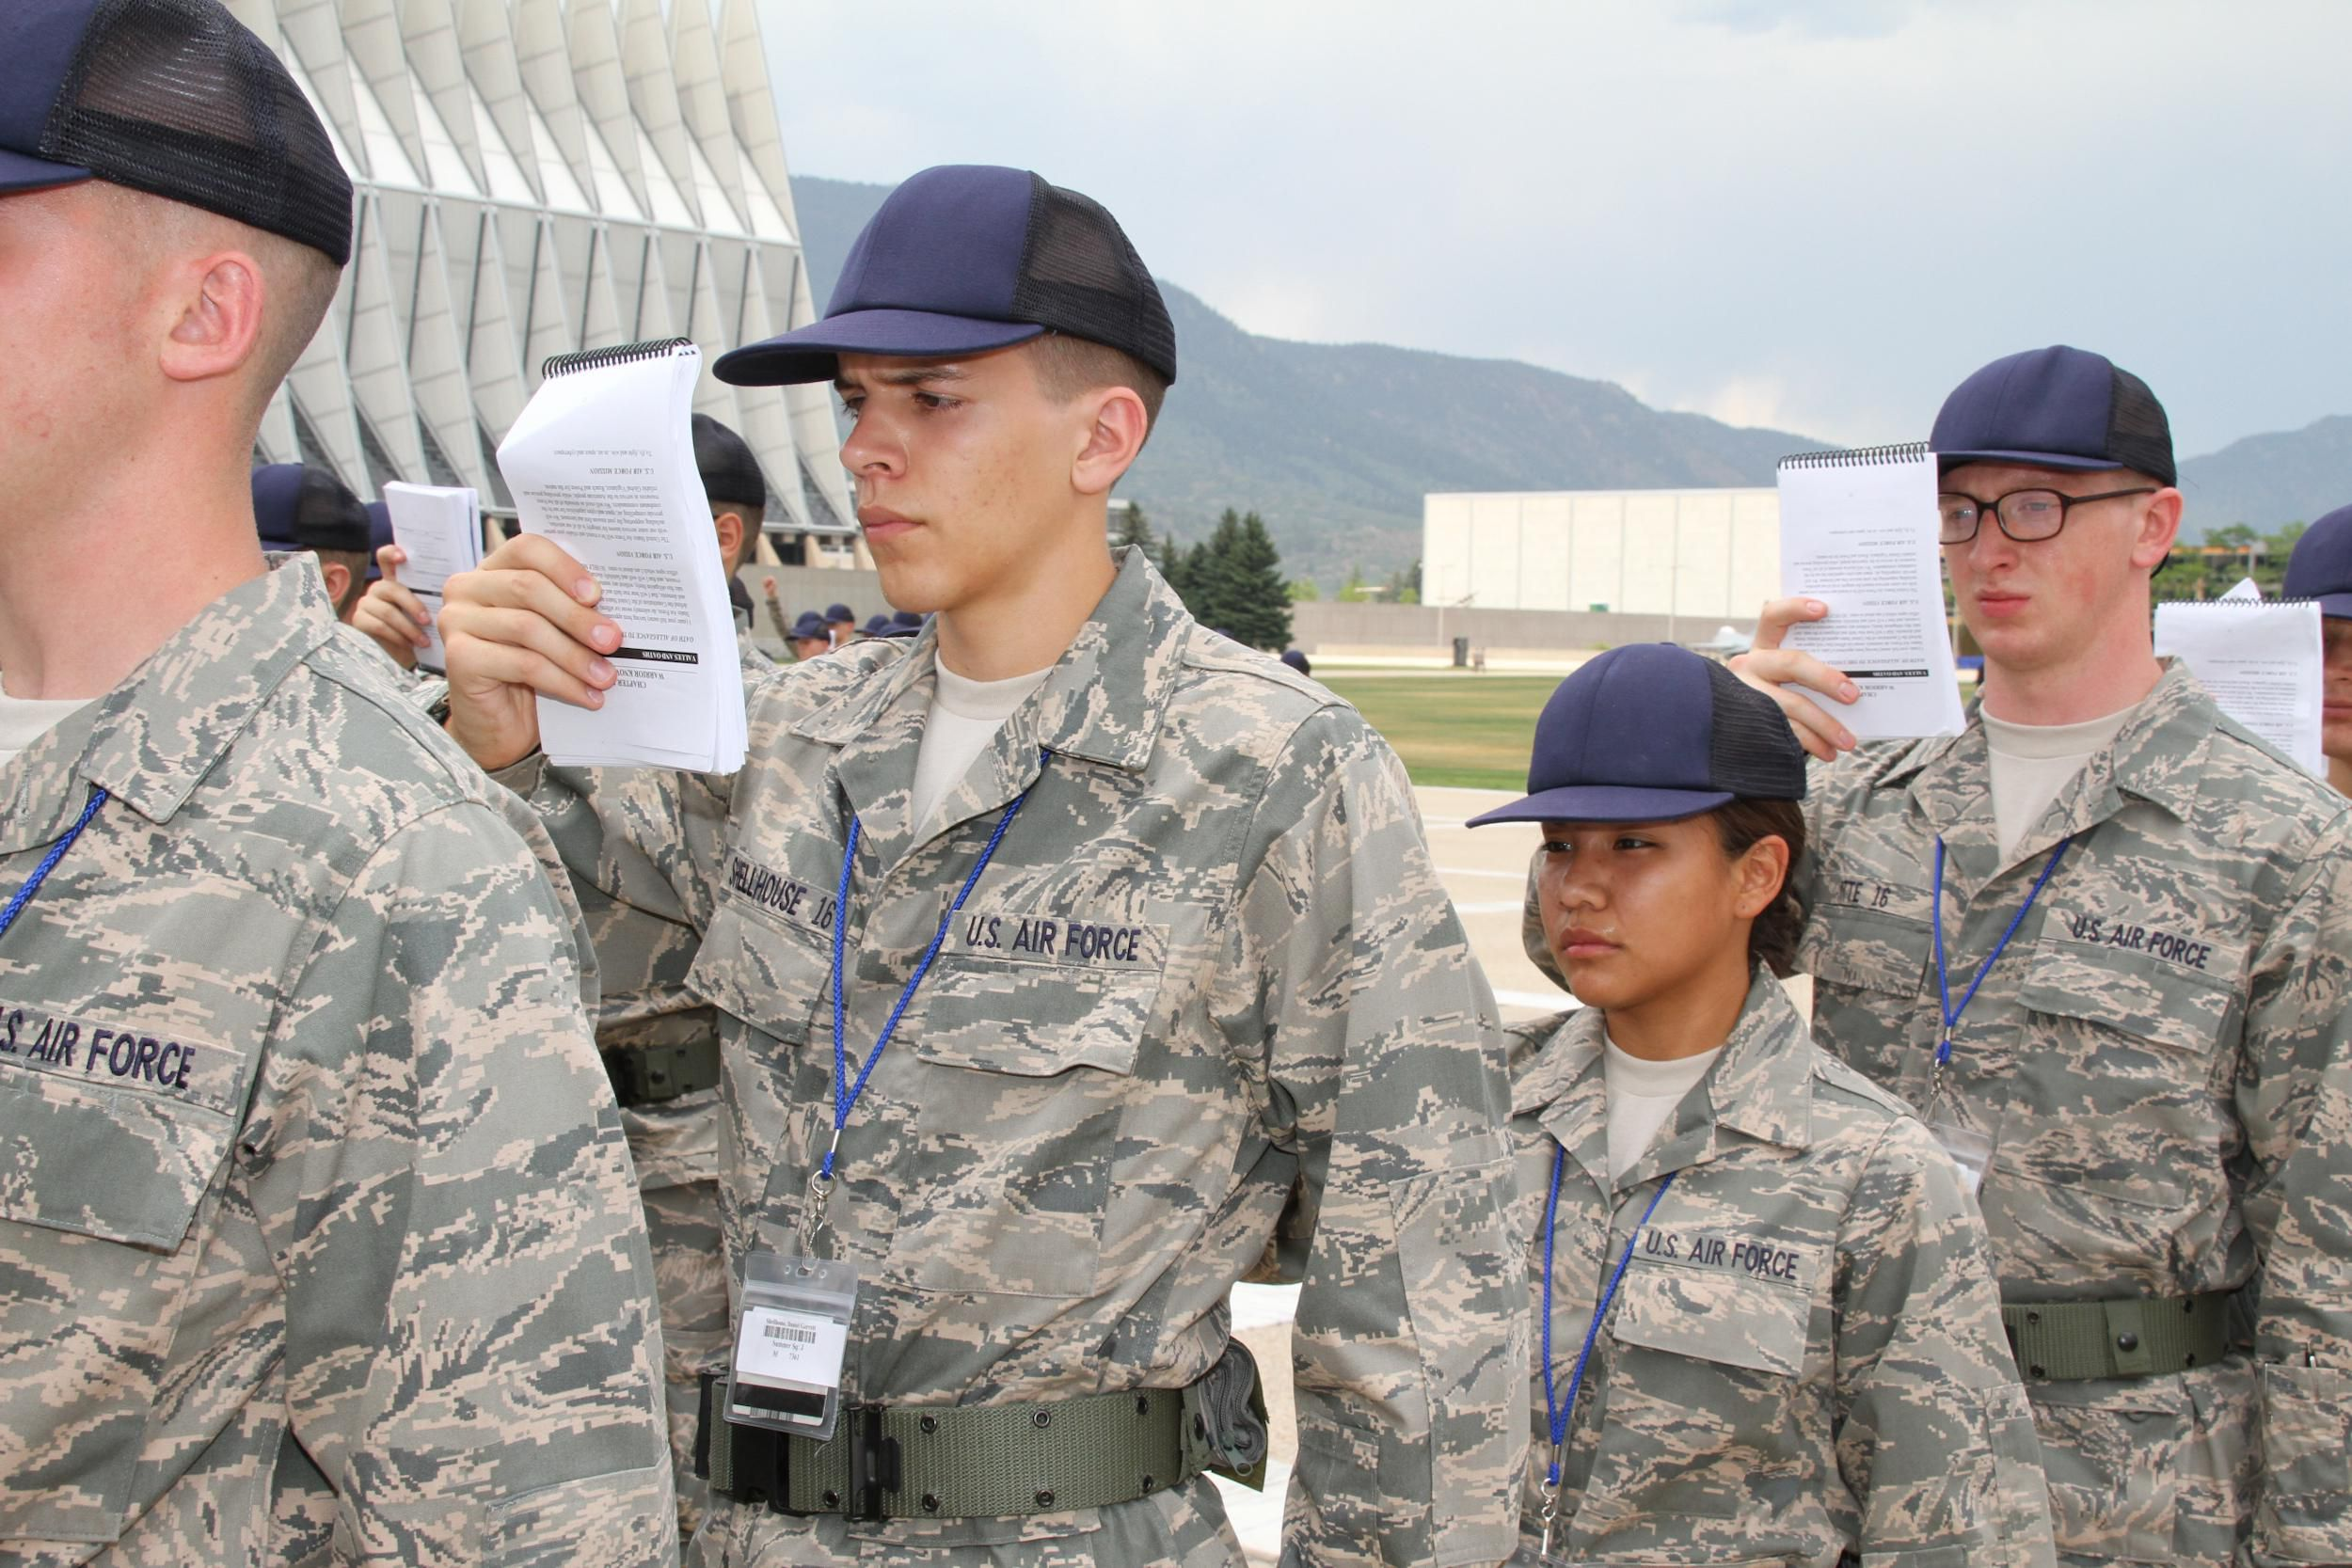 Surviving air force basic training - How to become an army officer after college ...